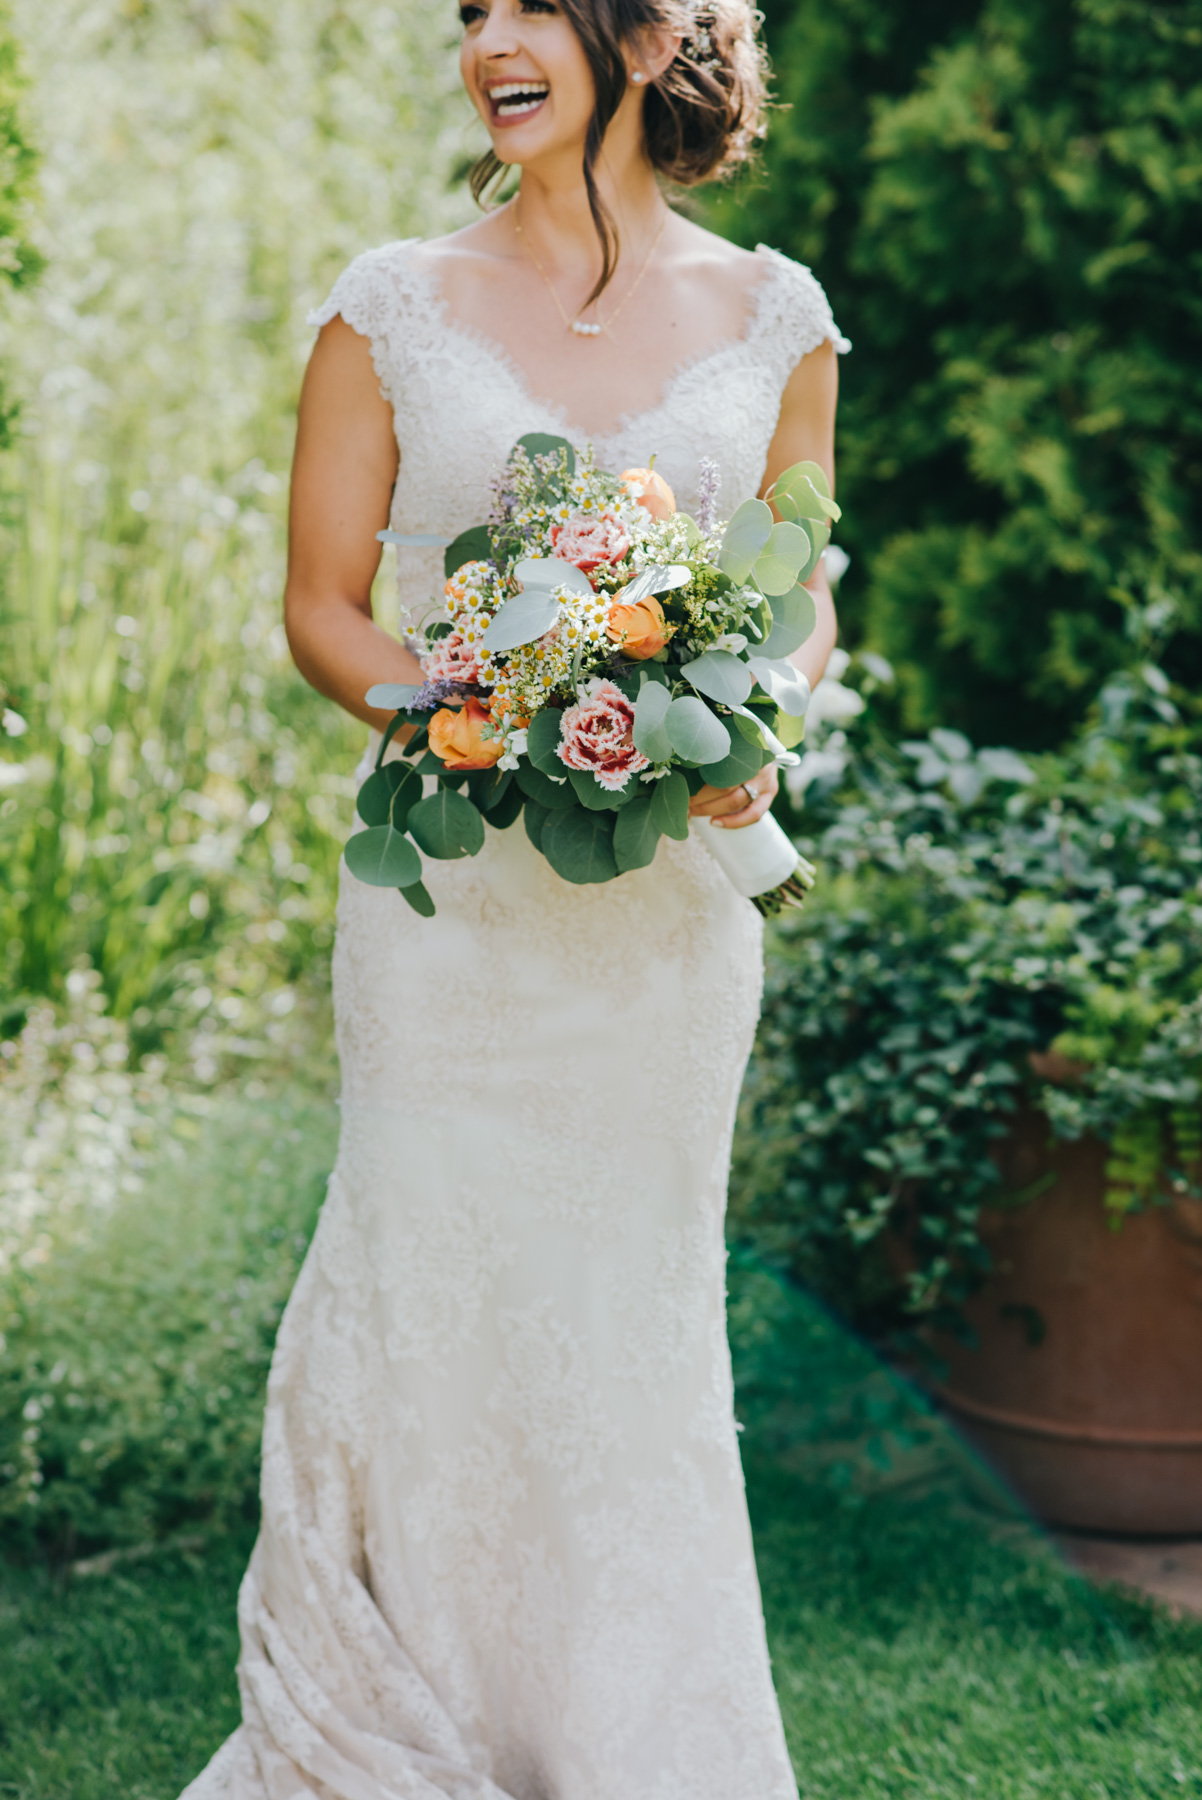 Jamie on her wedding day at the Denver Botanic Gardens. Here she is right before the ceremony, holding her gorgeous bouquet (which she got from Whole Foods!)